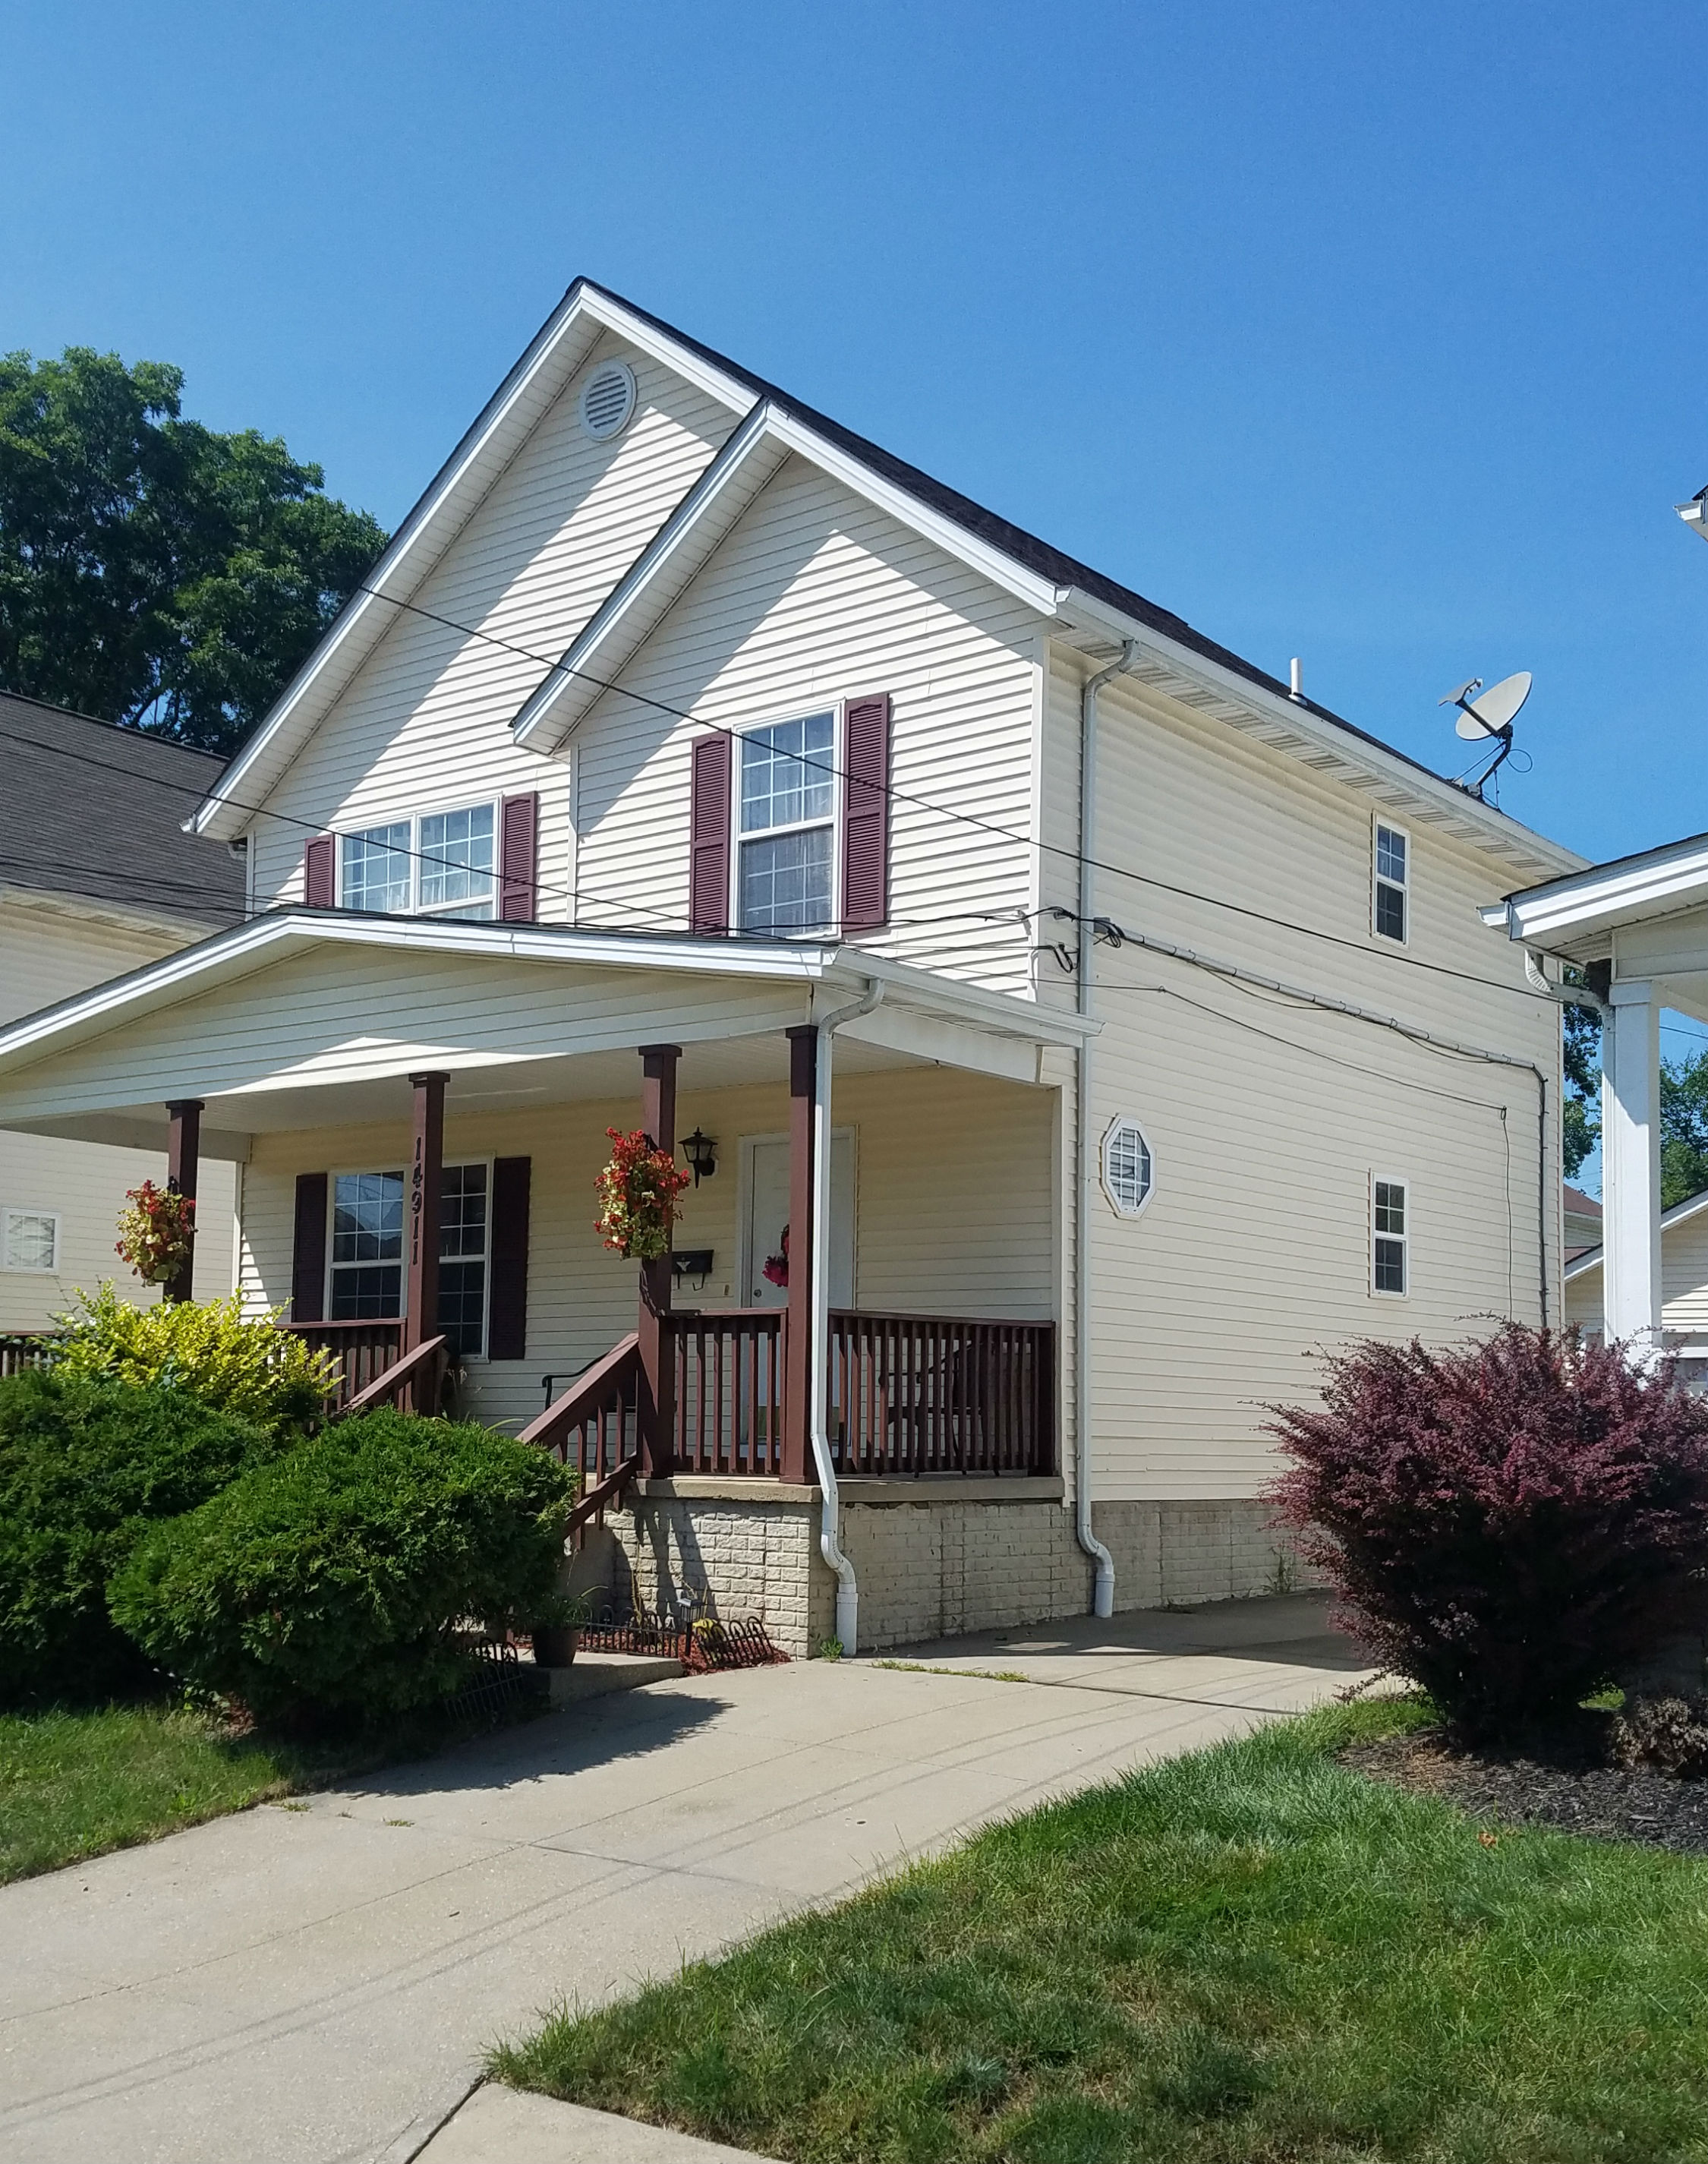 14901 Florida Ave., Cleveland | 3 bed 2 bath | 2,070 Sq. Ft. | $36,000